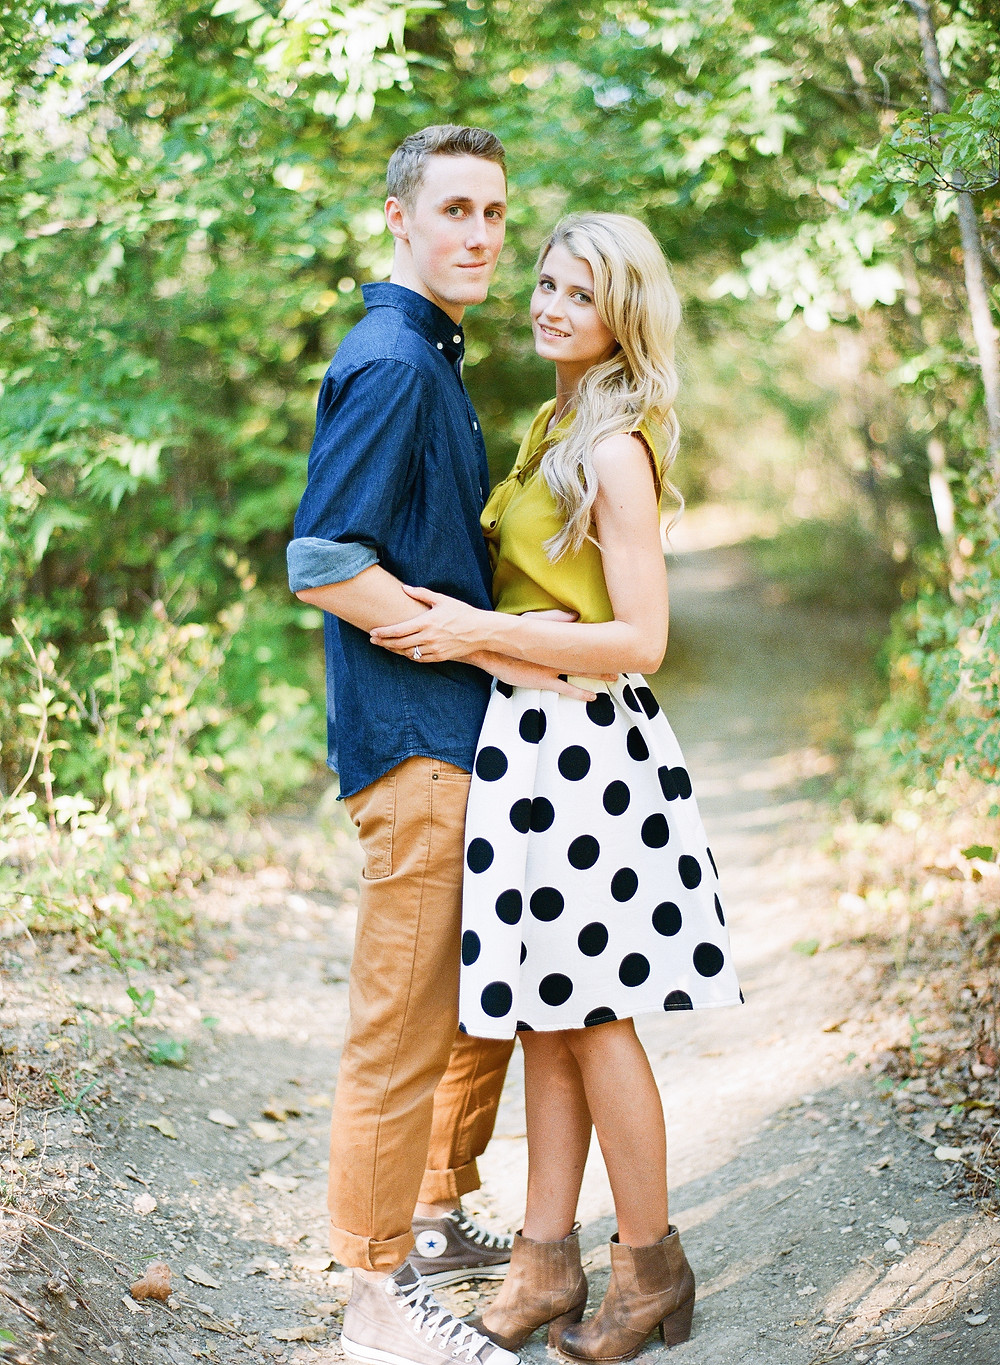 Young couple 1 year wedding anniversary photos in Plano Texas